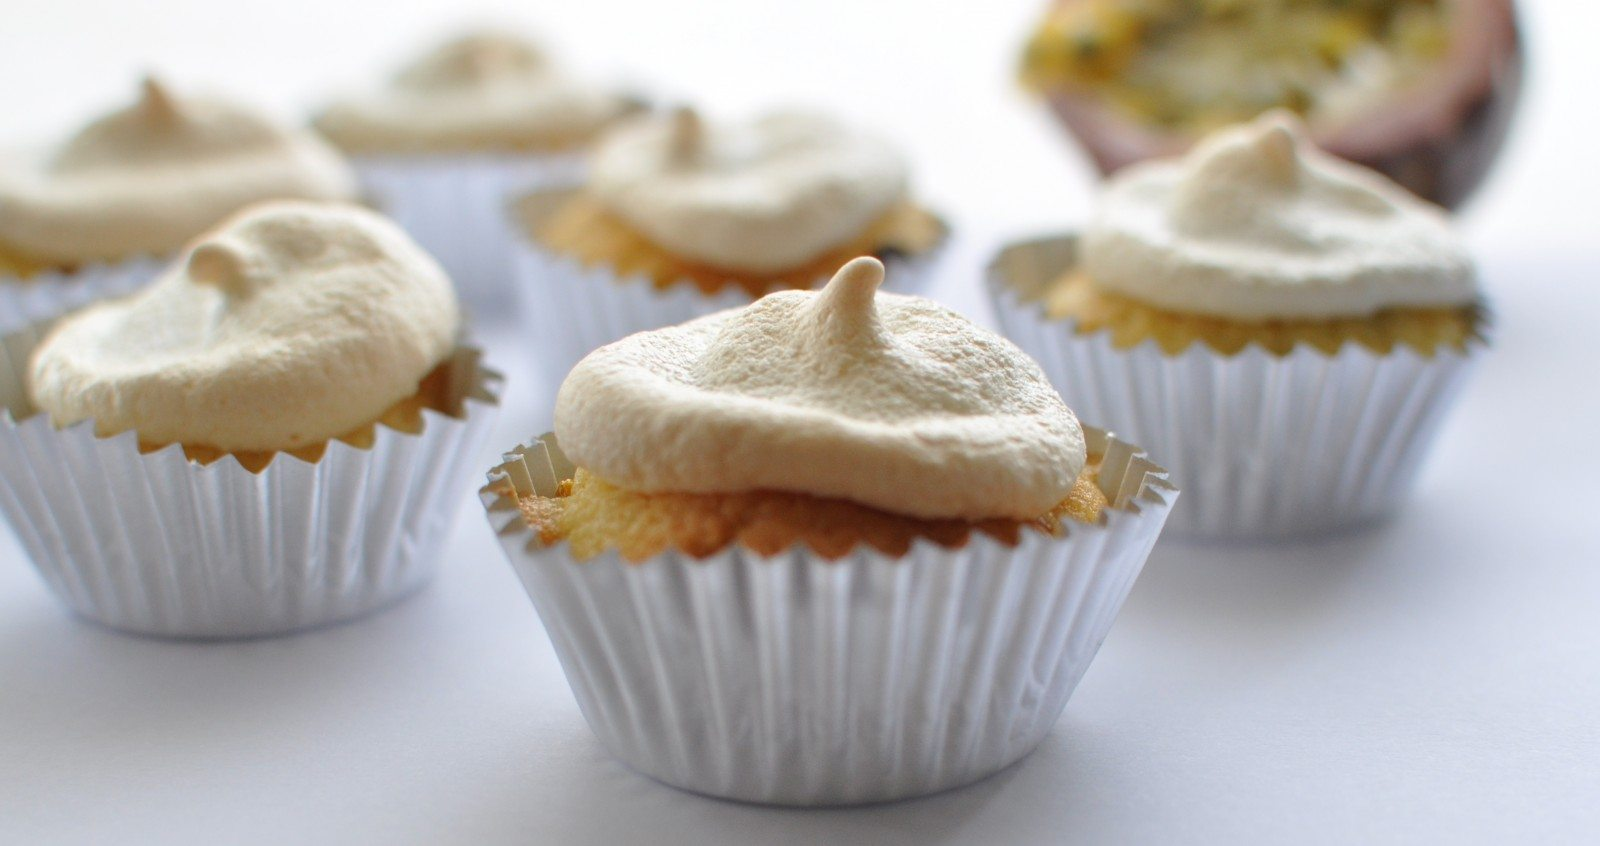 Passionfruit meringue cupcakes